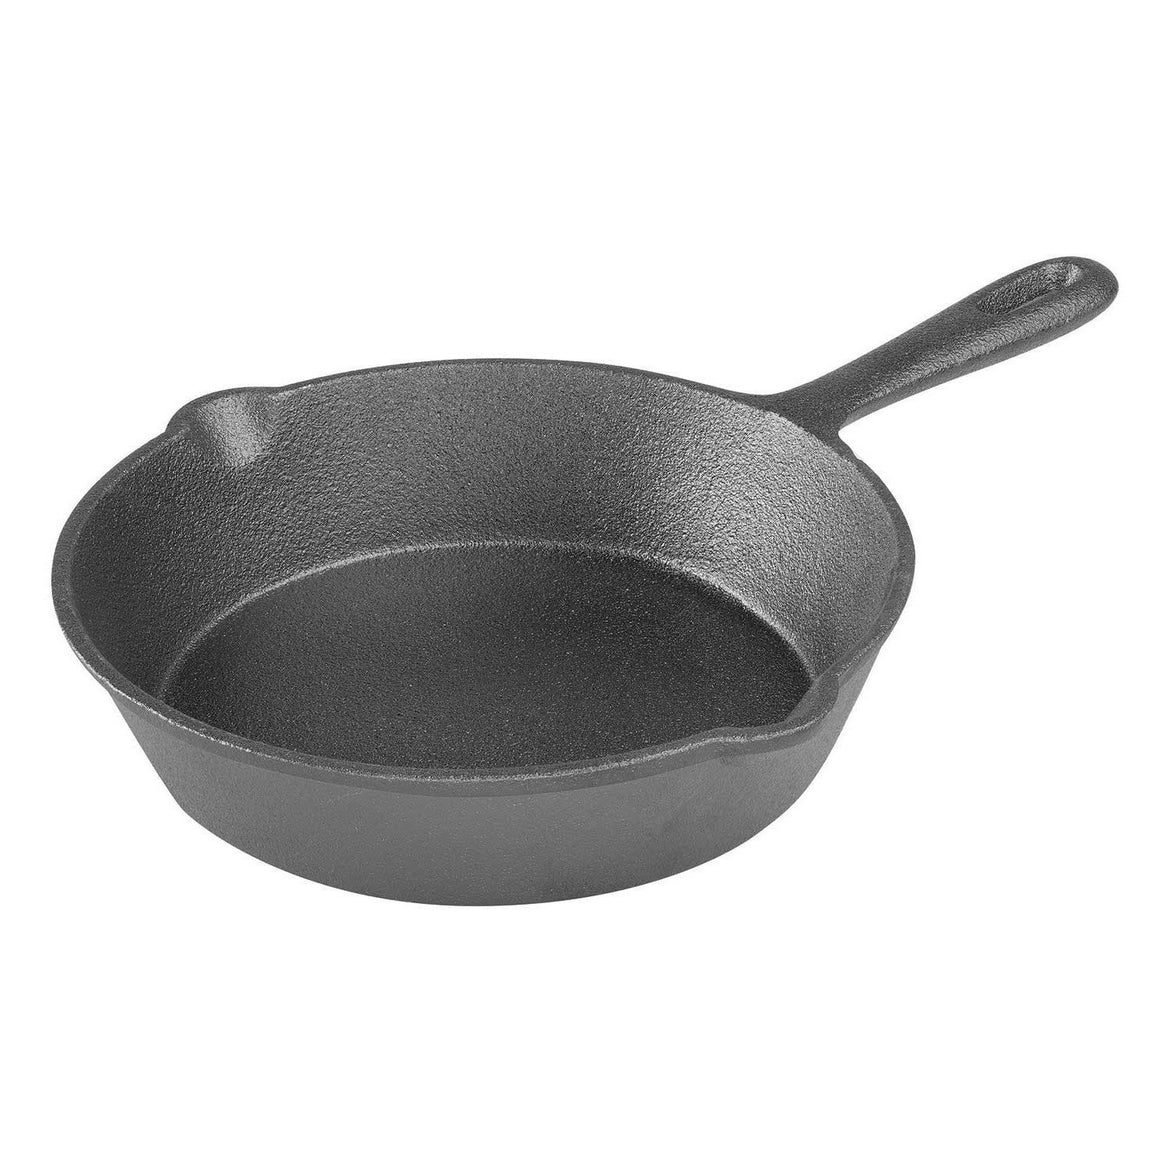 Pyrolux Pyrocast Skillet 19.5cm - stuff-n-things